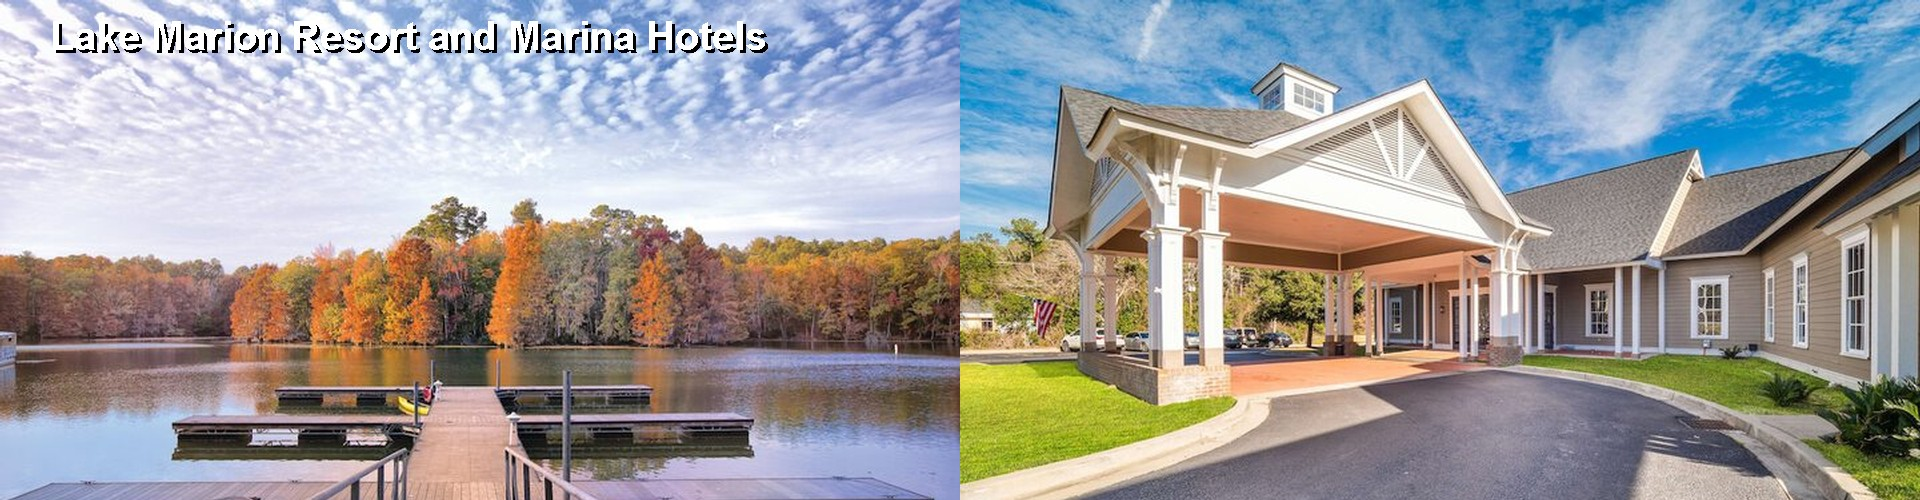 4 Best Hotels near Lake Marion Resort and Marina